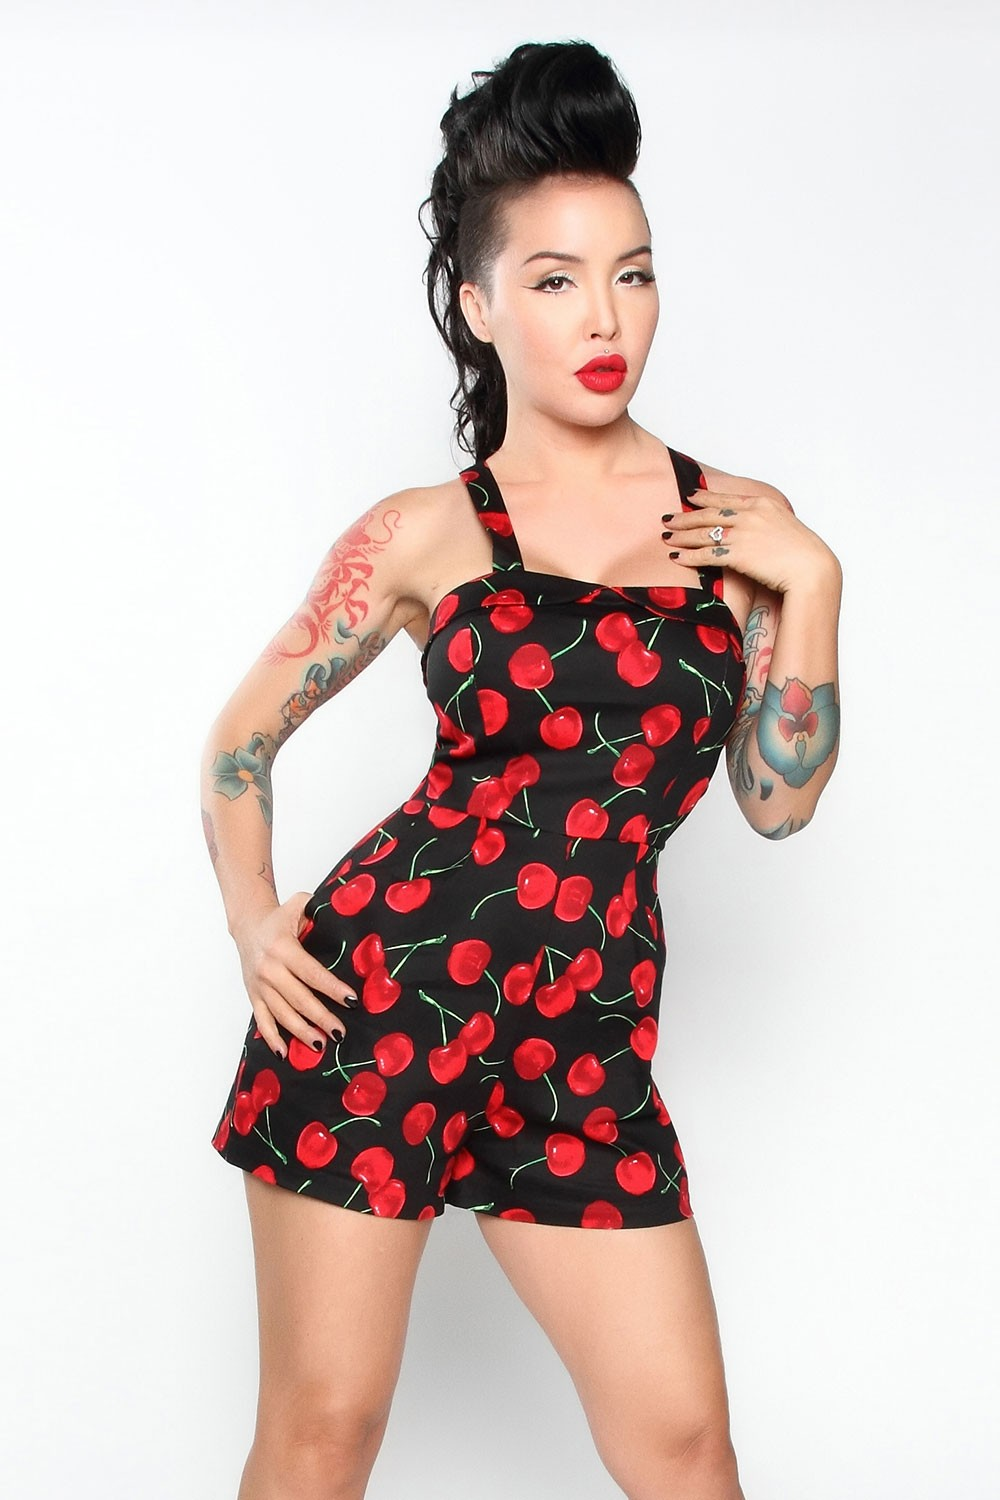 073b3a8789e Detail Feedback Questions about 30 summer women vintage 50s black cherry  print retro Yeeha Playsuit plus size 4xl romper jumpsuits rompers clothing  pinup ...